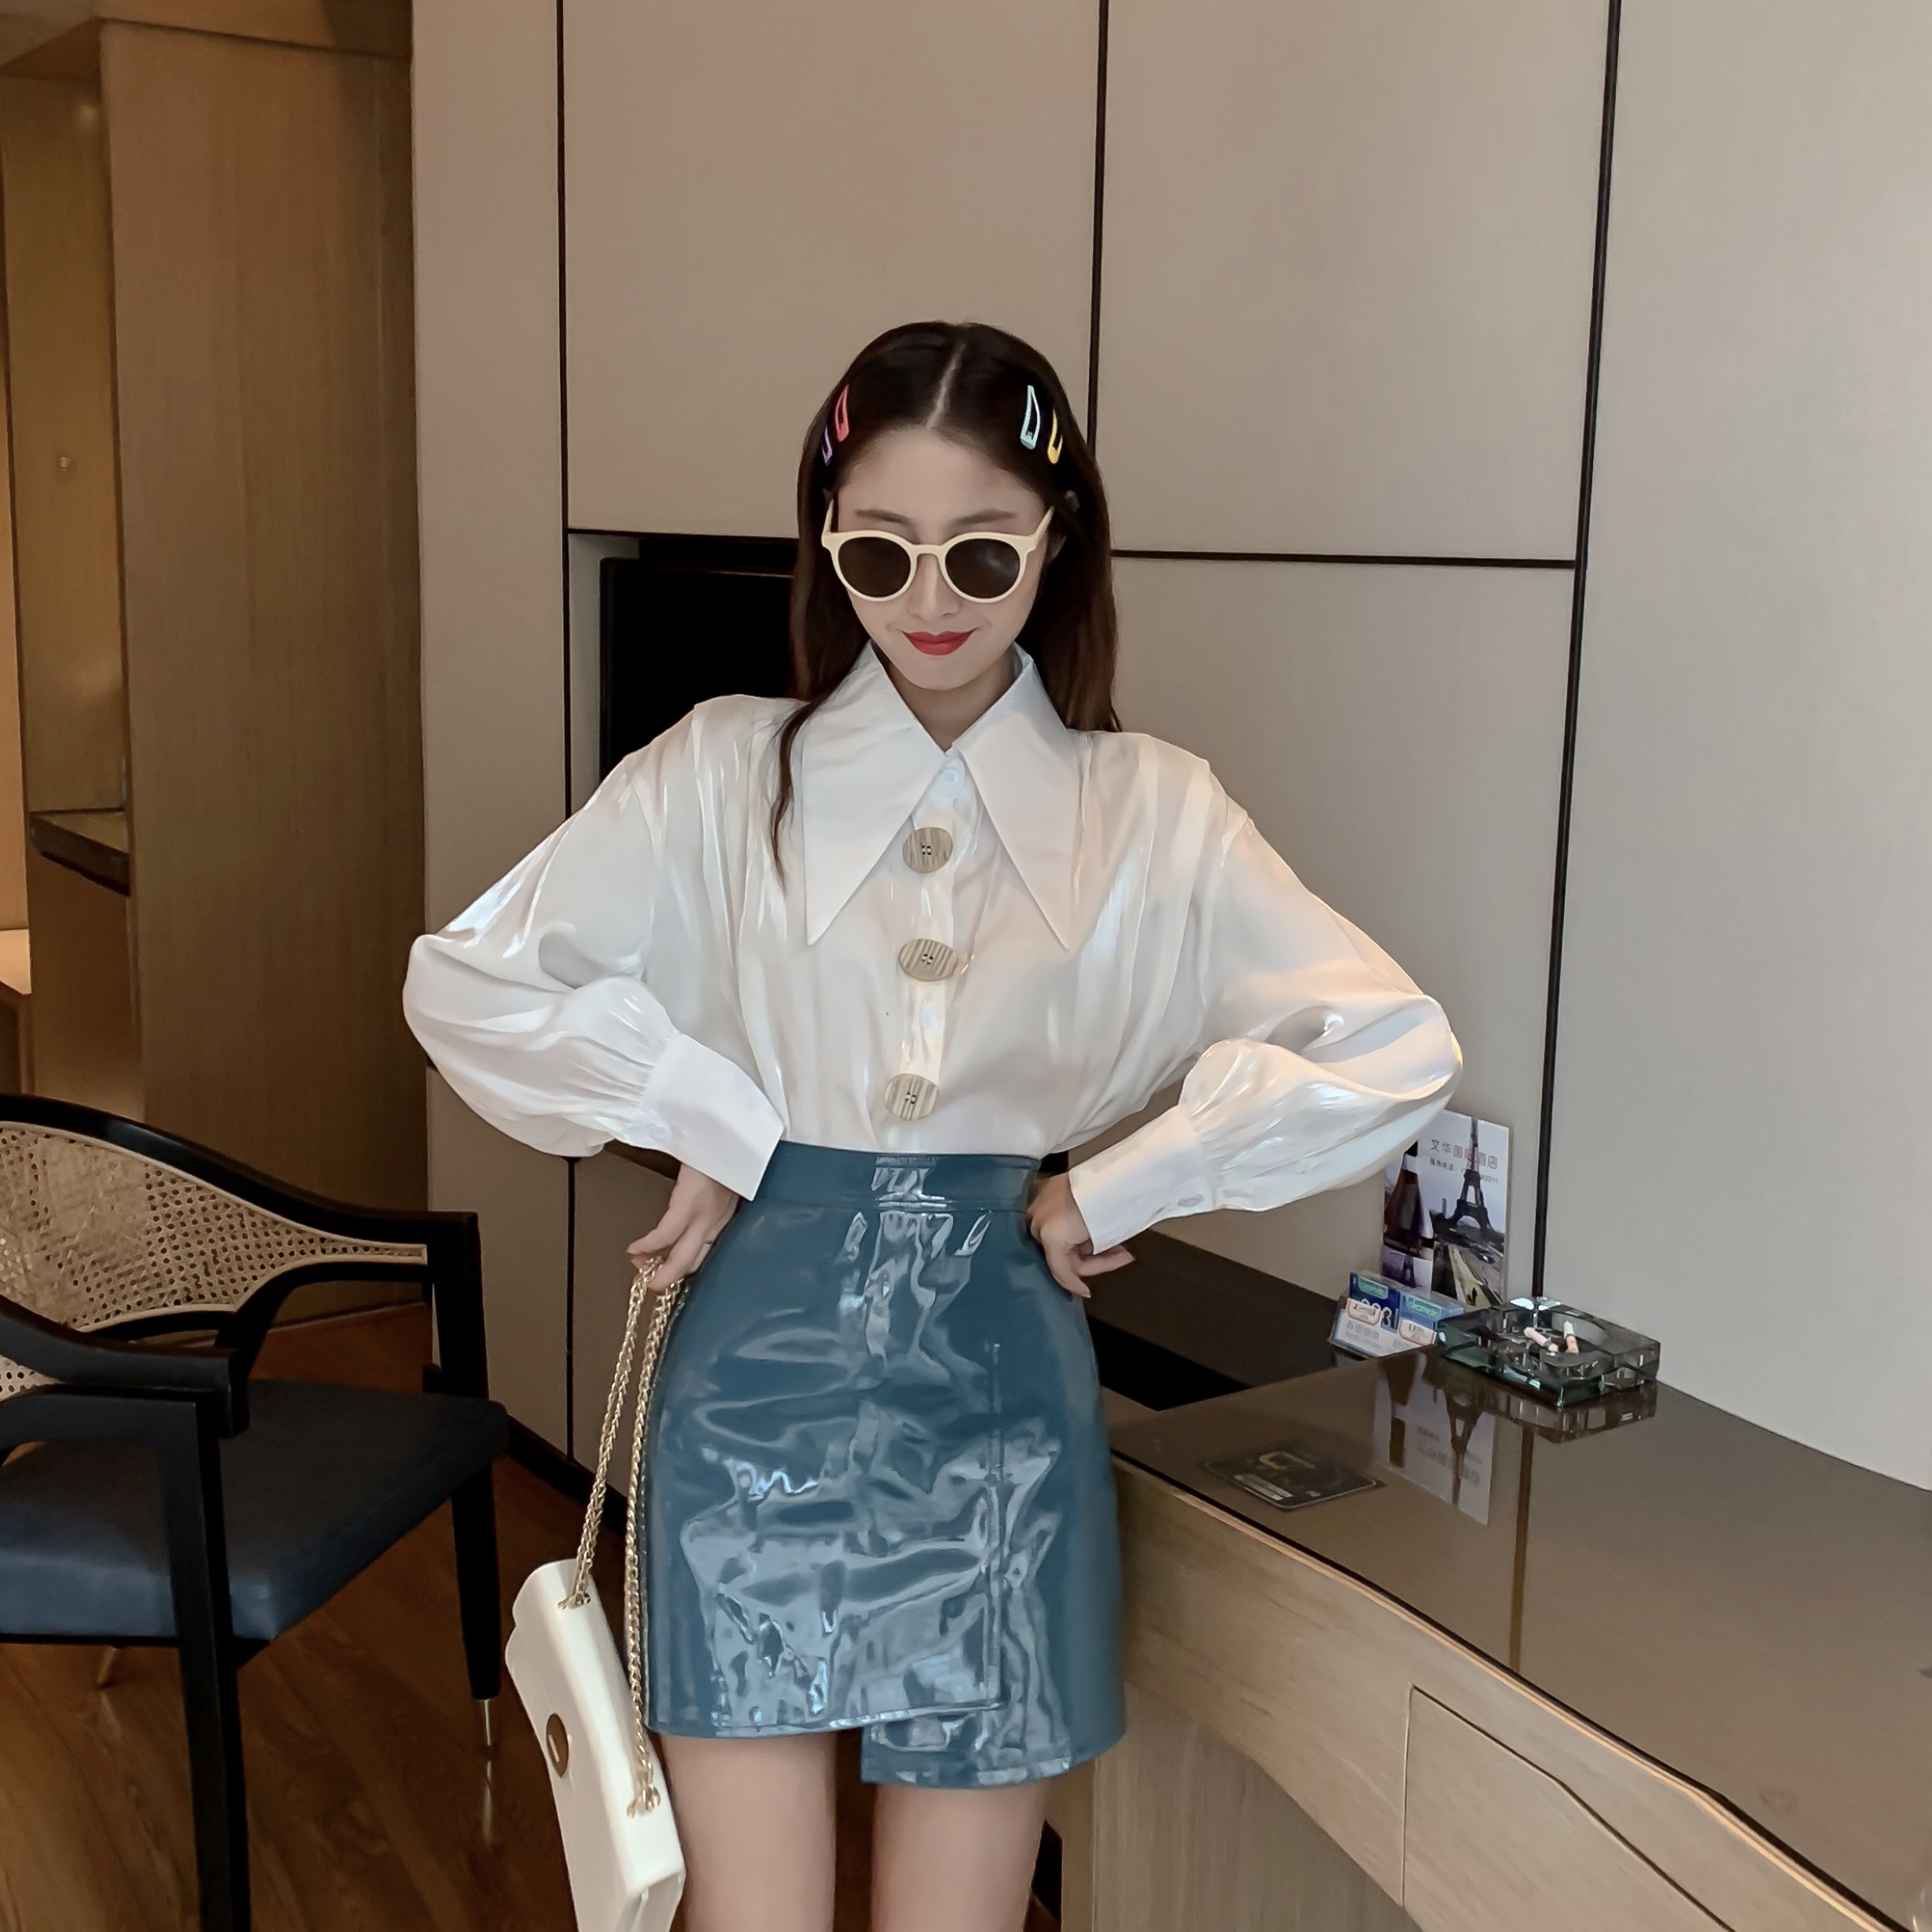 COIGARSAM 2019 New Autumn Shirt Womens Tops Single Breasted Hong Flavor Design Feeling Small Women Shirts White 281